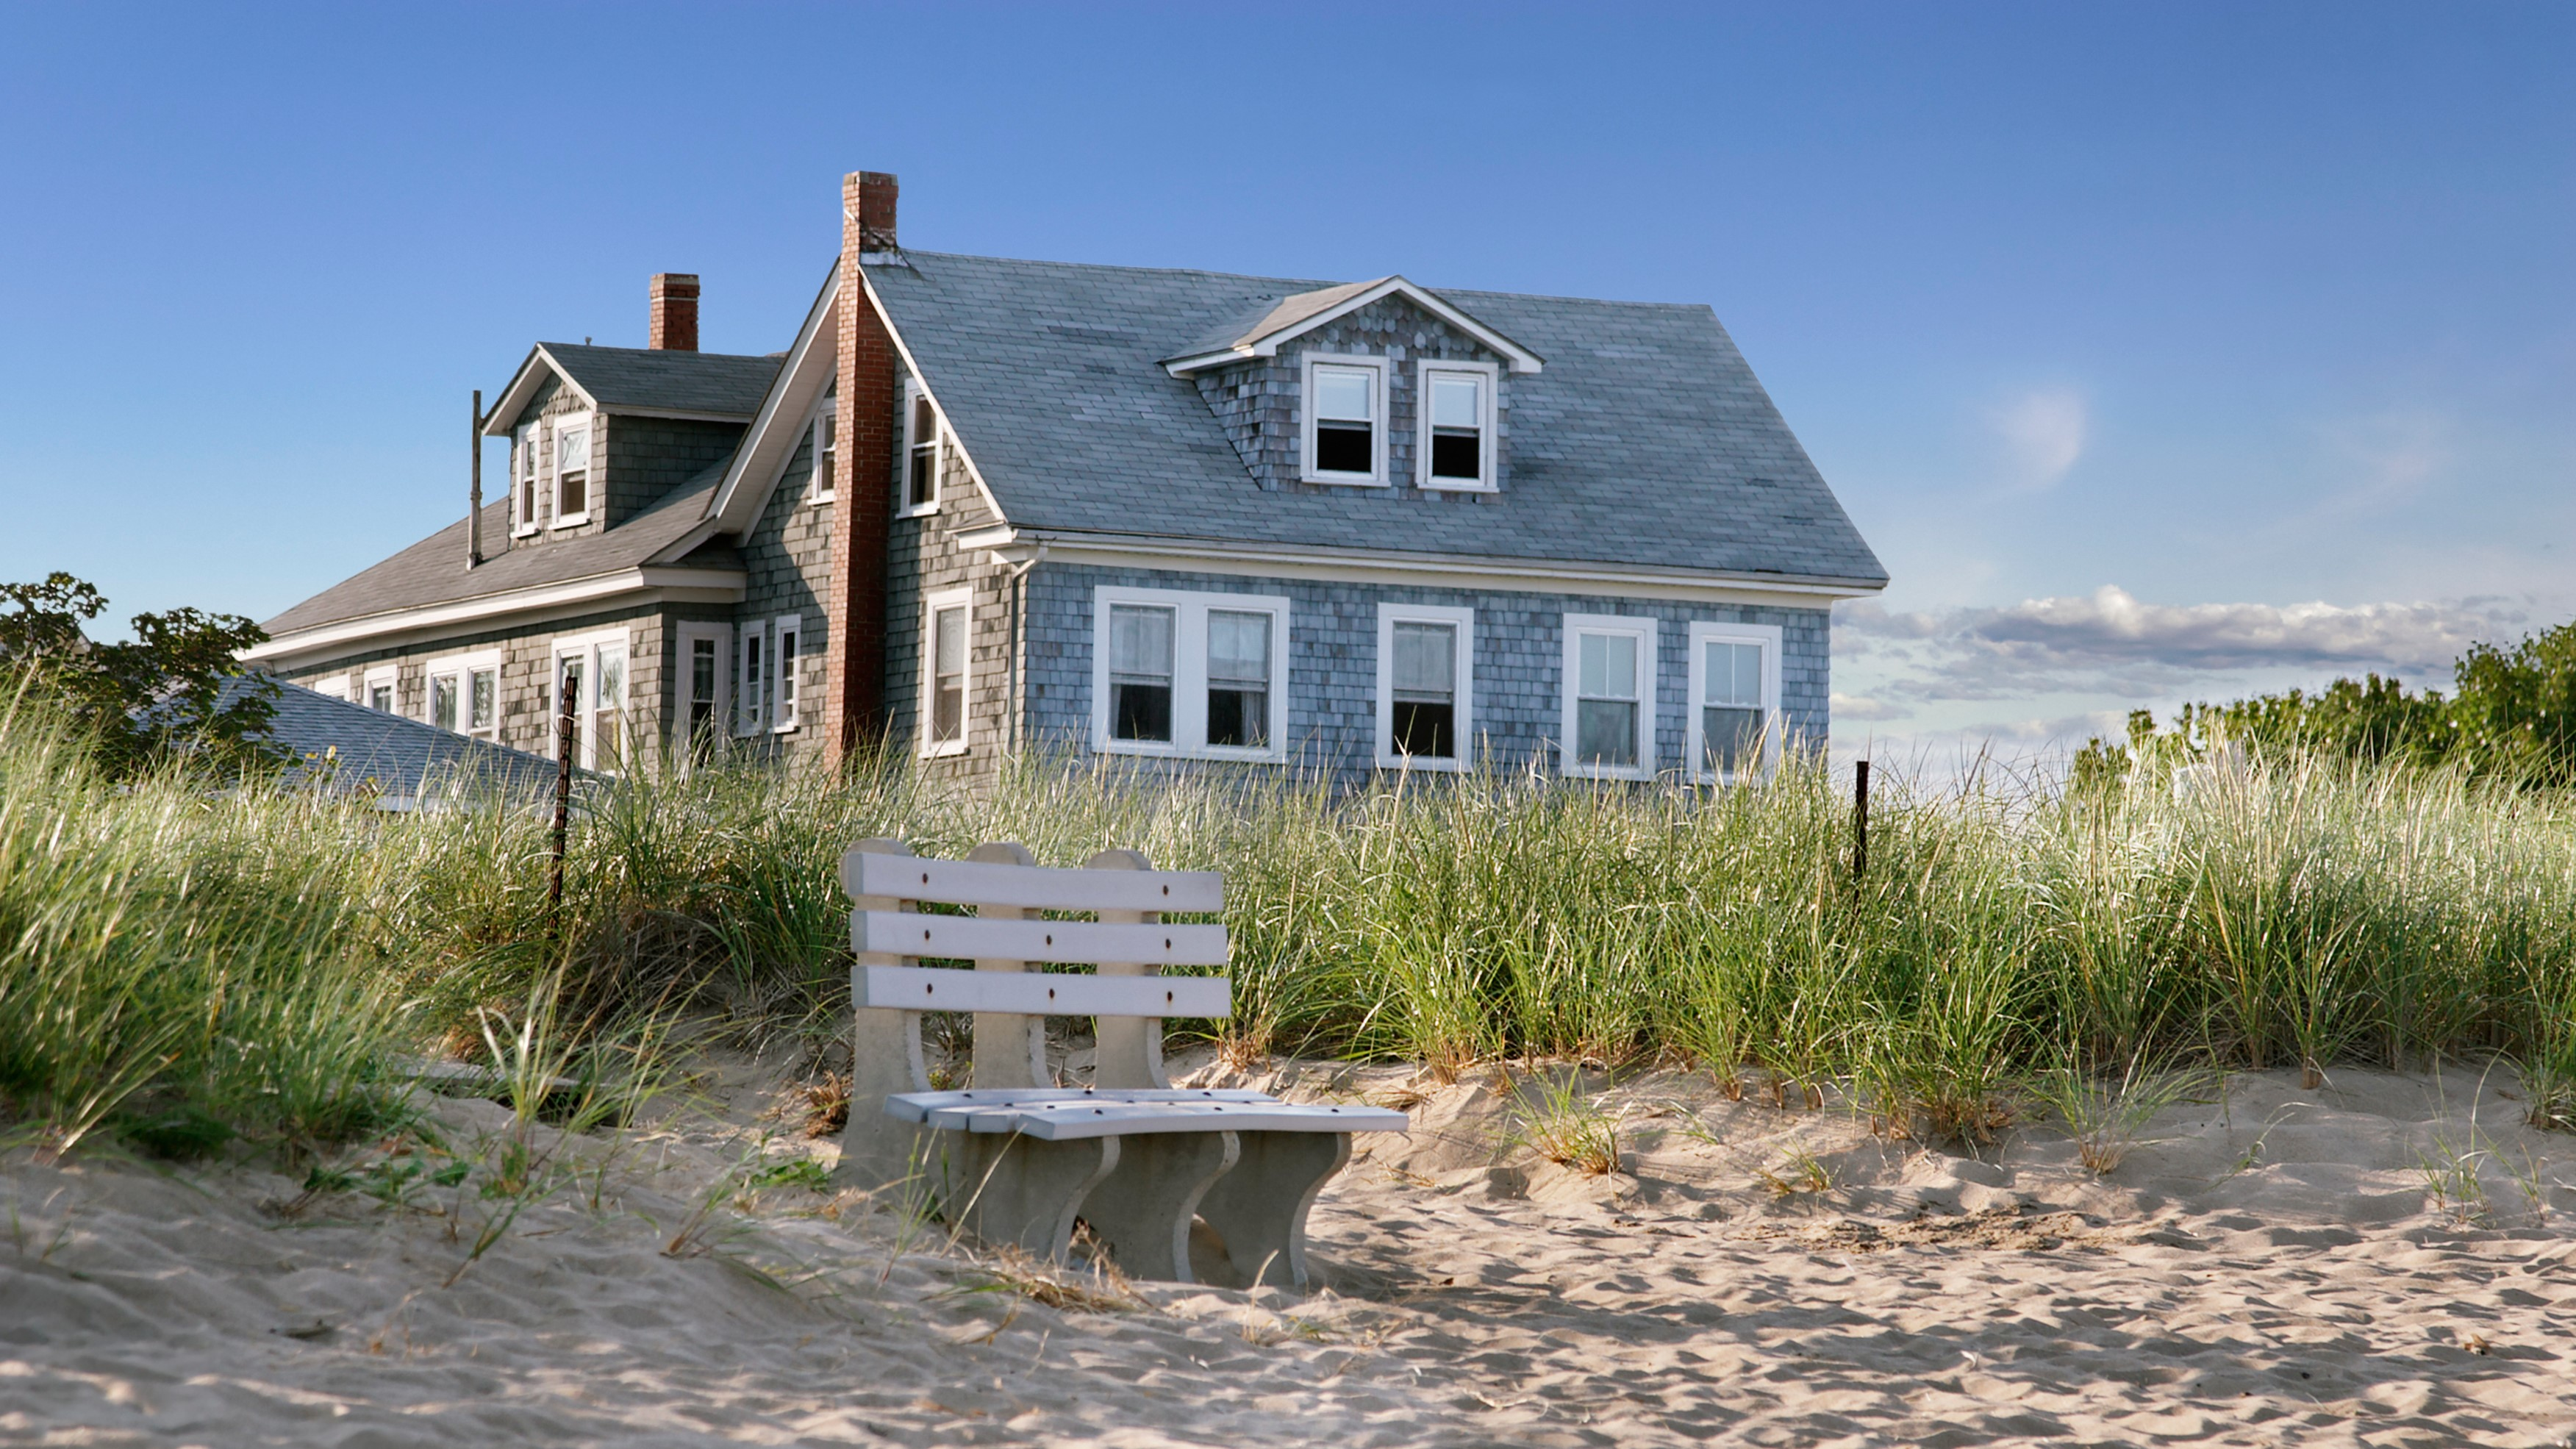 APEG Estate Planning for the Family Vacation Home